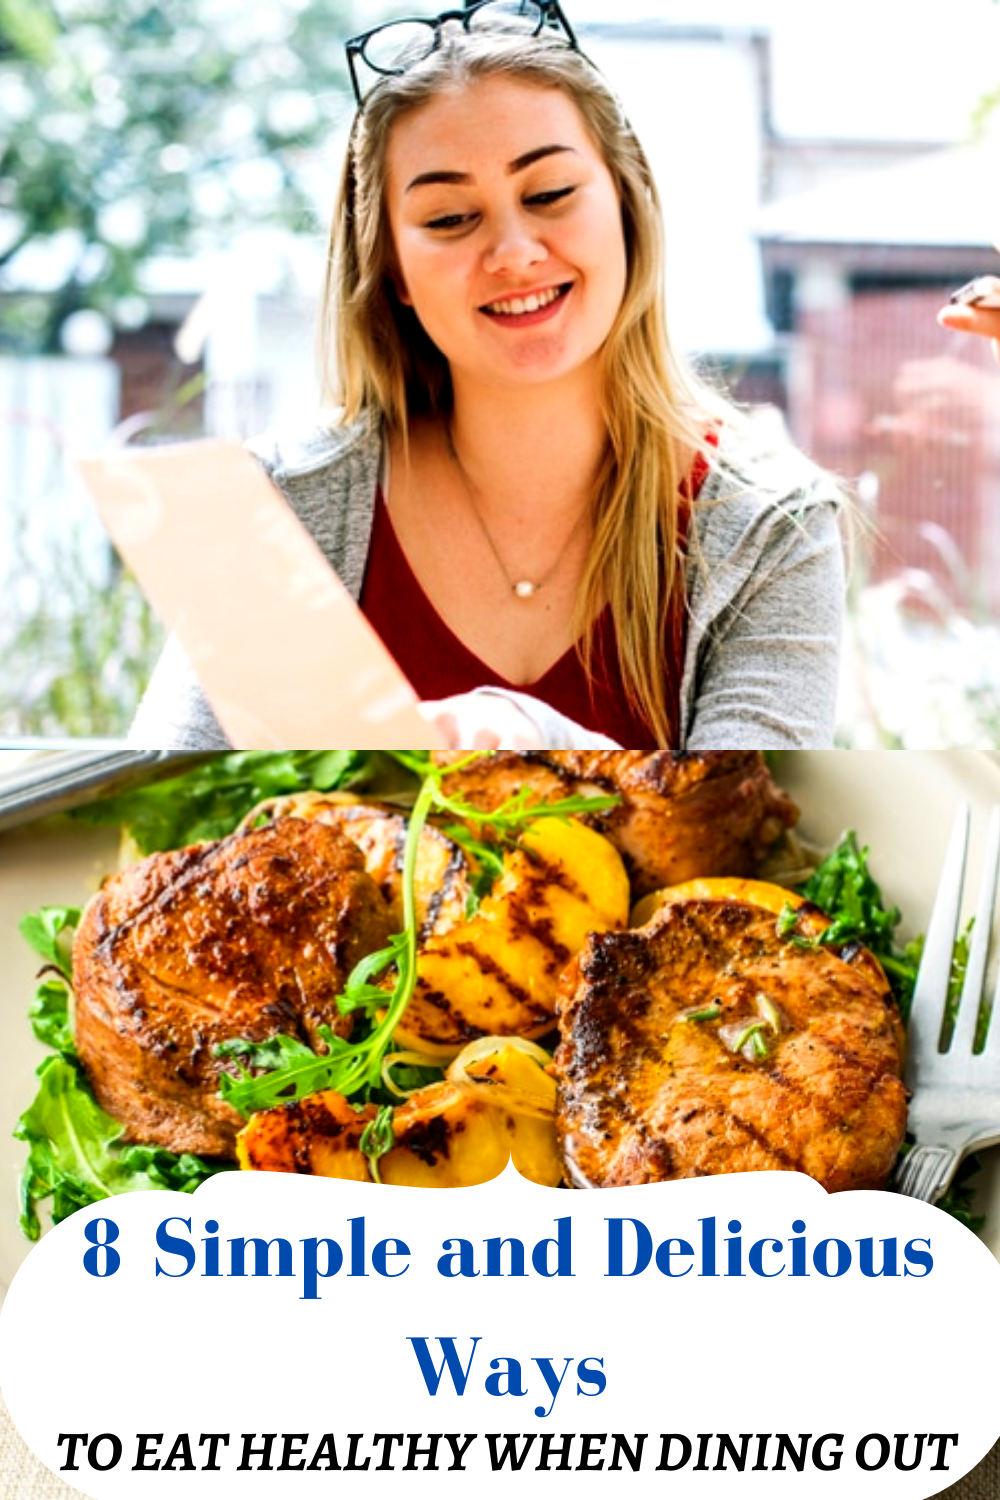 8 Simple and Delicious Ways to Eat Healthy When Dining Out